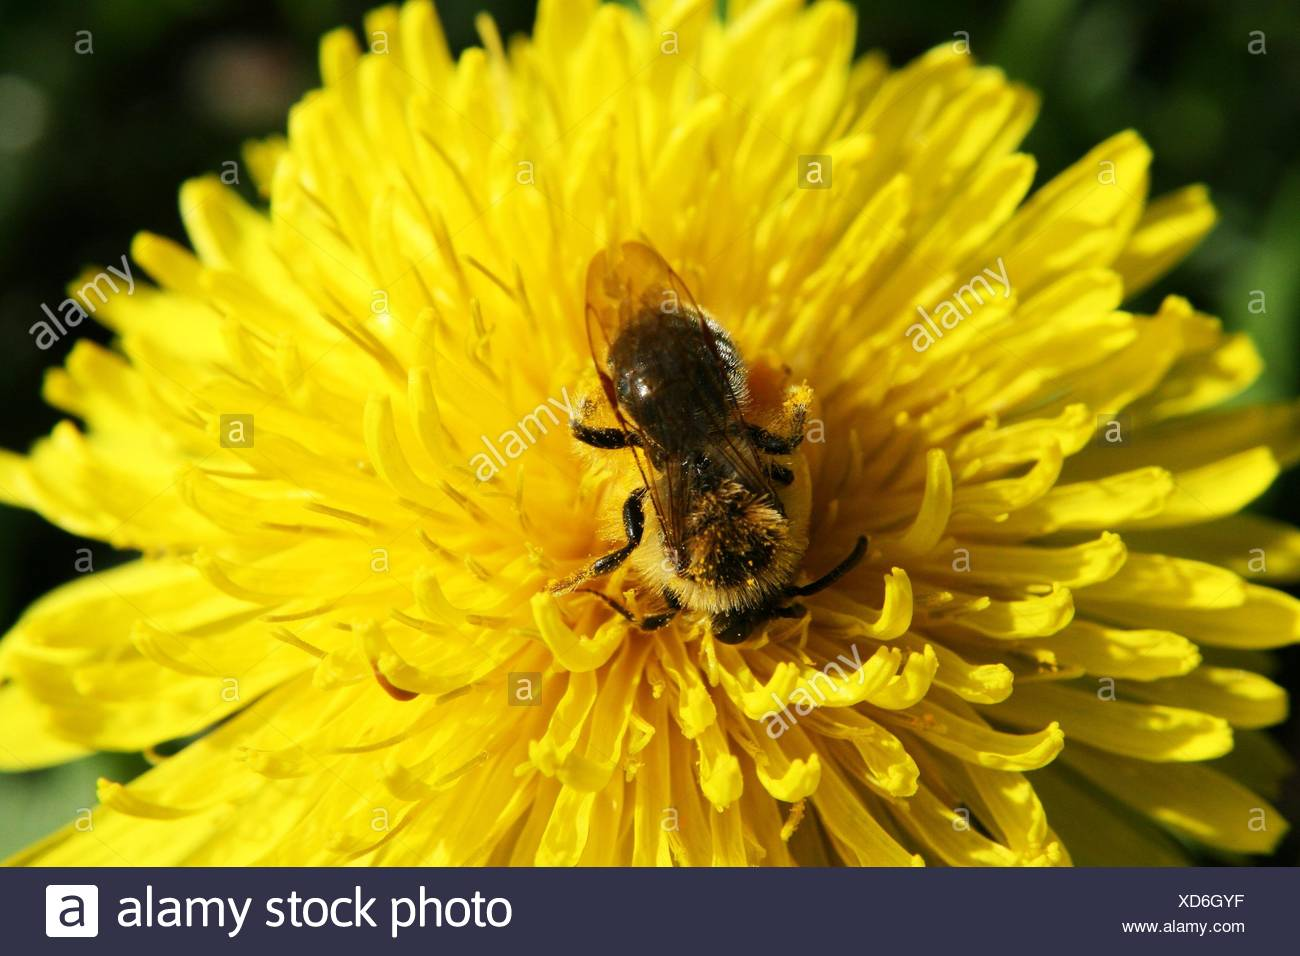 dandelion insect bee macro close-up macro admission close up view detail garden - Stock Image